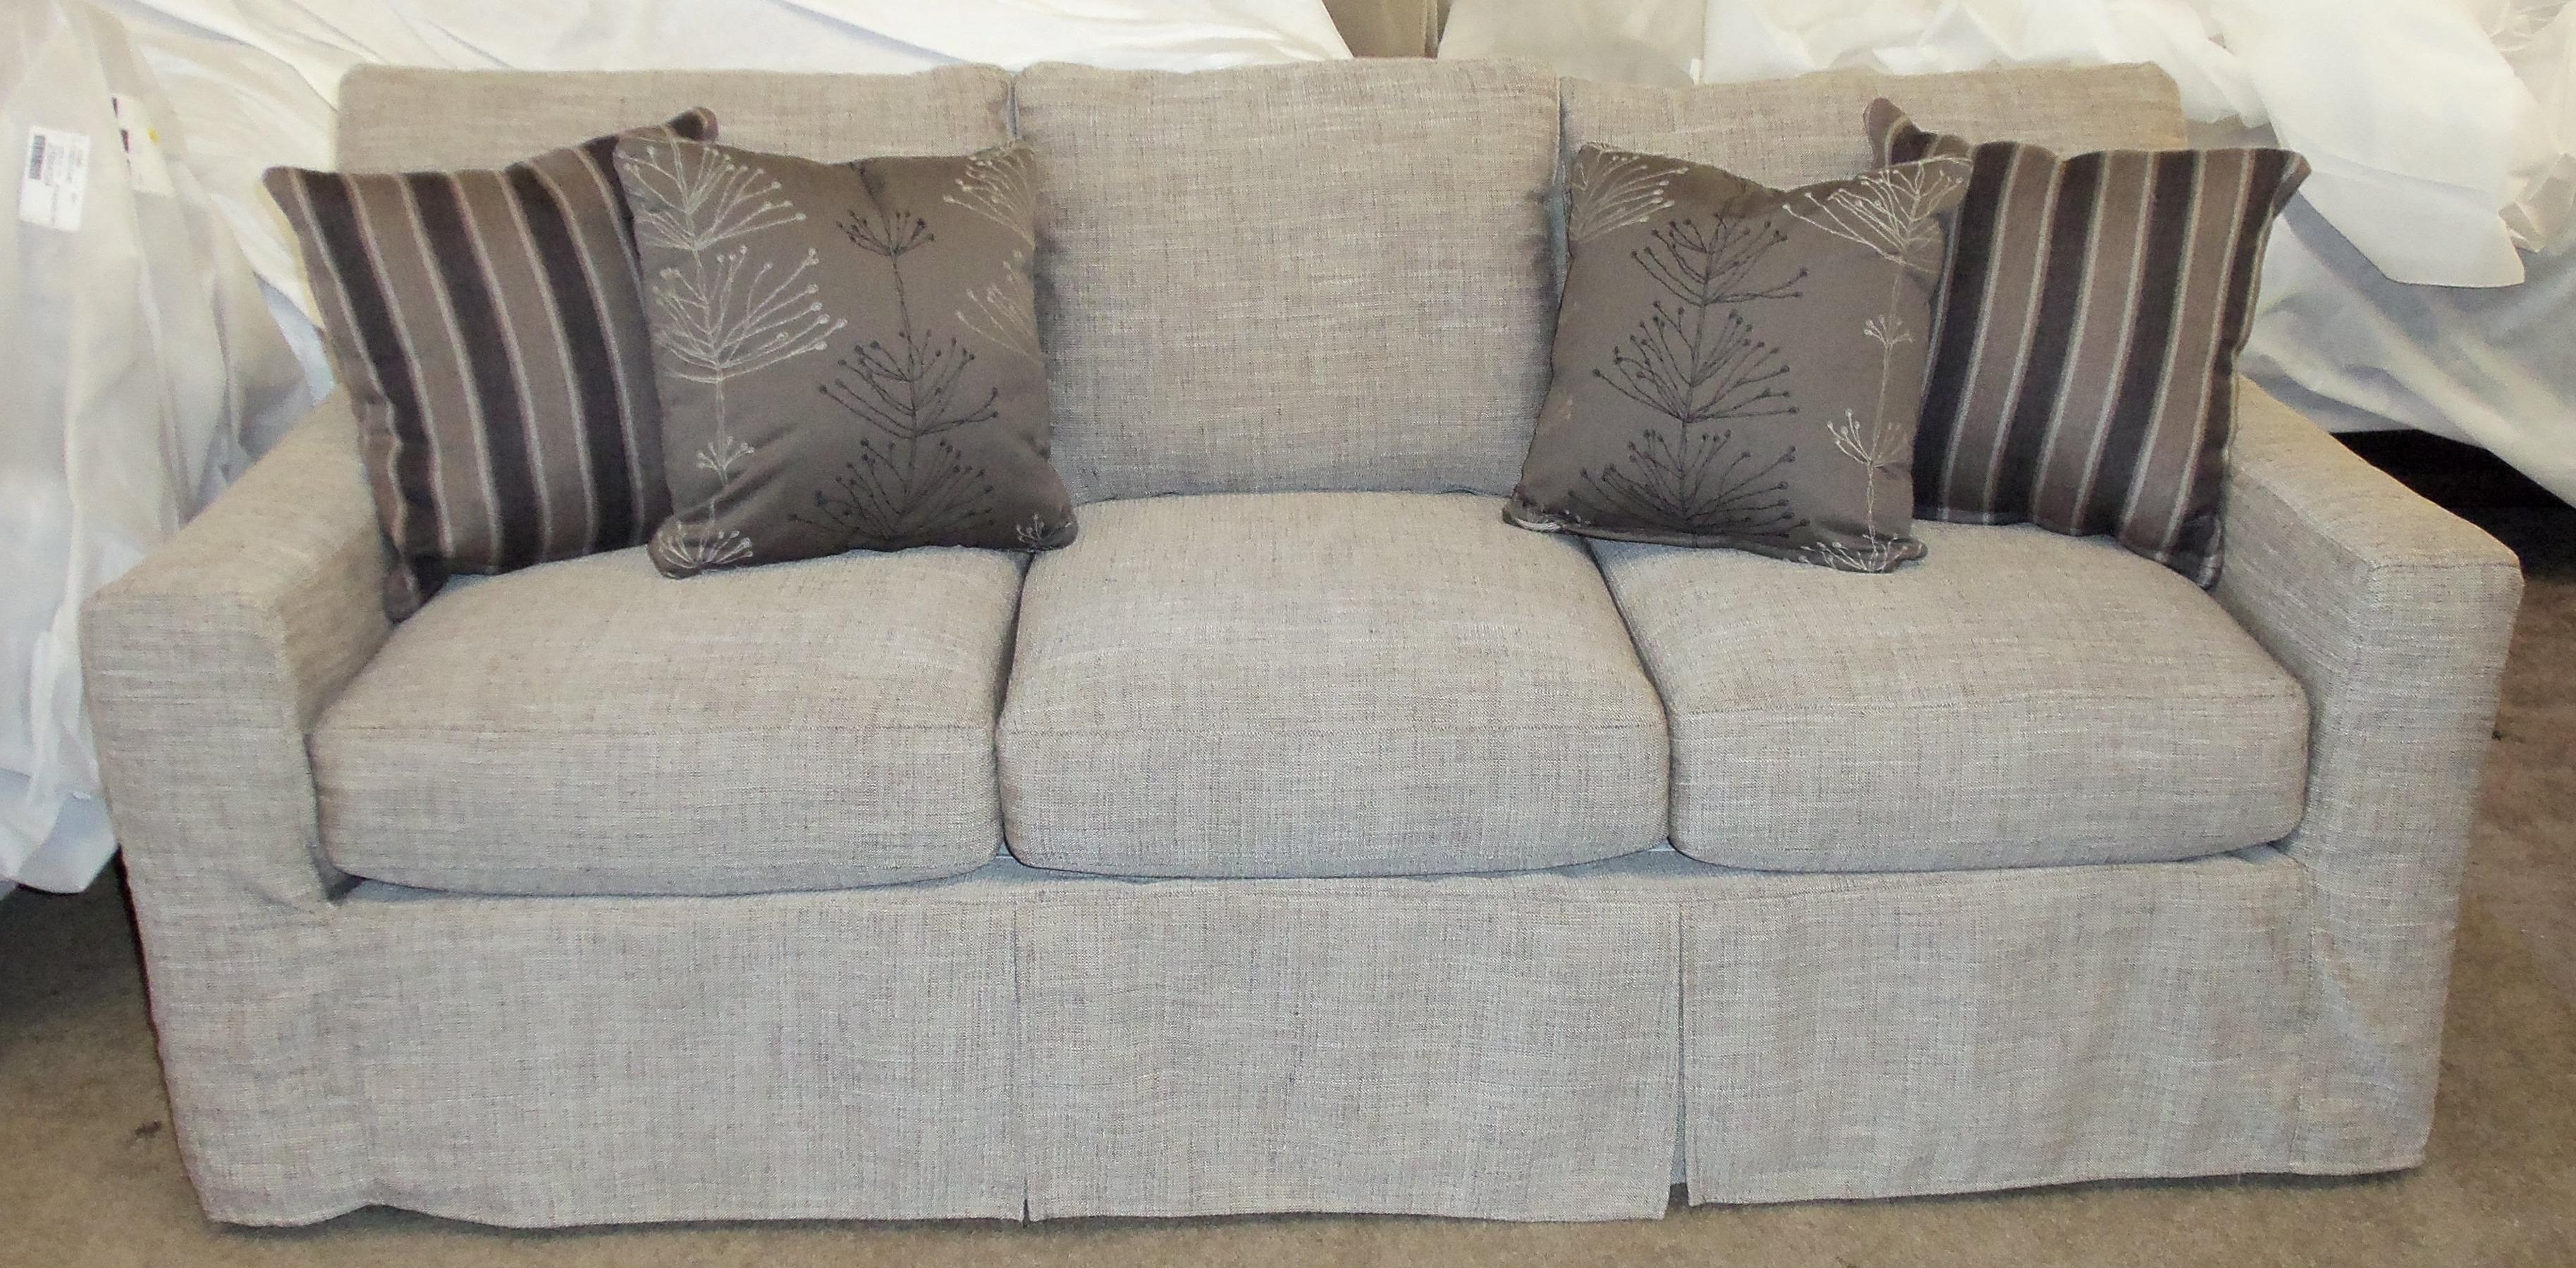 Sofas Center : Sofa Slipcovers Cheap Sectional Living Roomtails Pertaining To Slipcovers Sofas (Image 20 of 20)